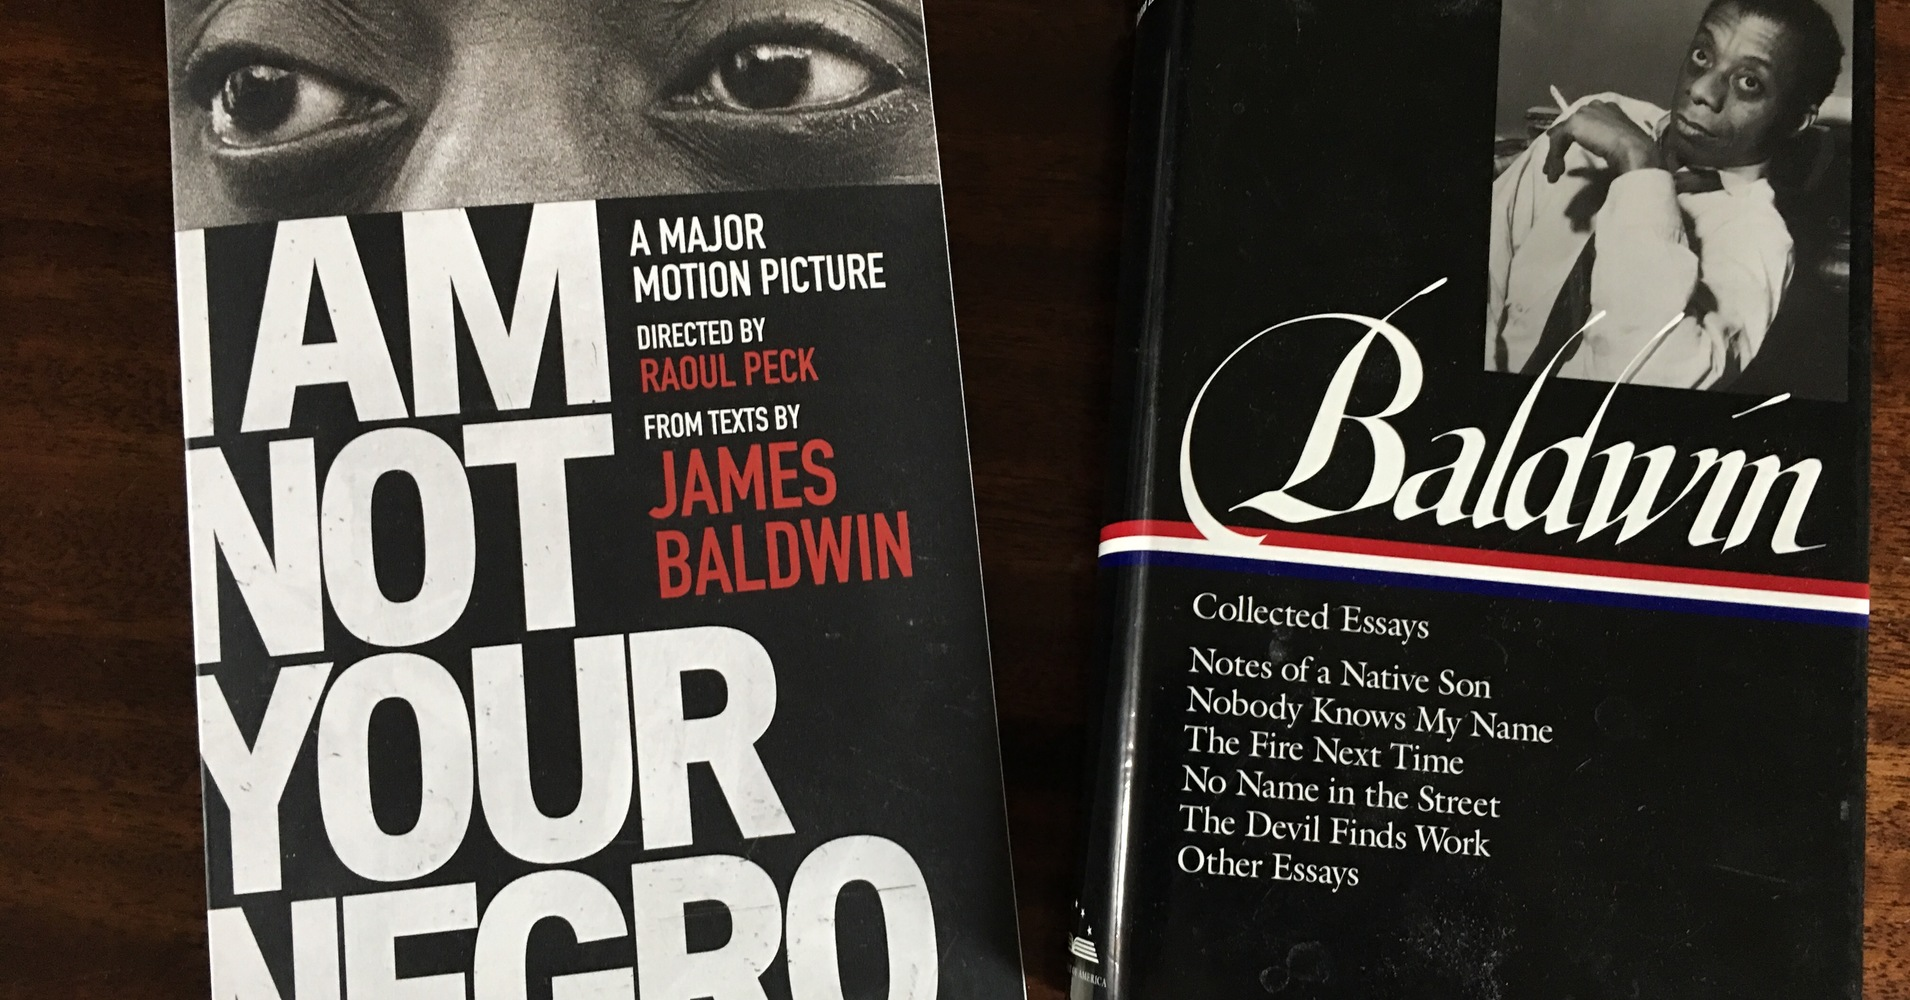 002 Essay Example James Baldwin Collected Essays 58b34c852900002700f28d18ops1910 1000 Wondrous Table Of Contents Ebook Google Books Full